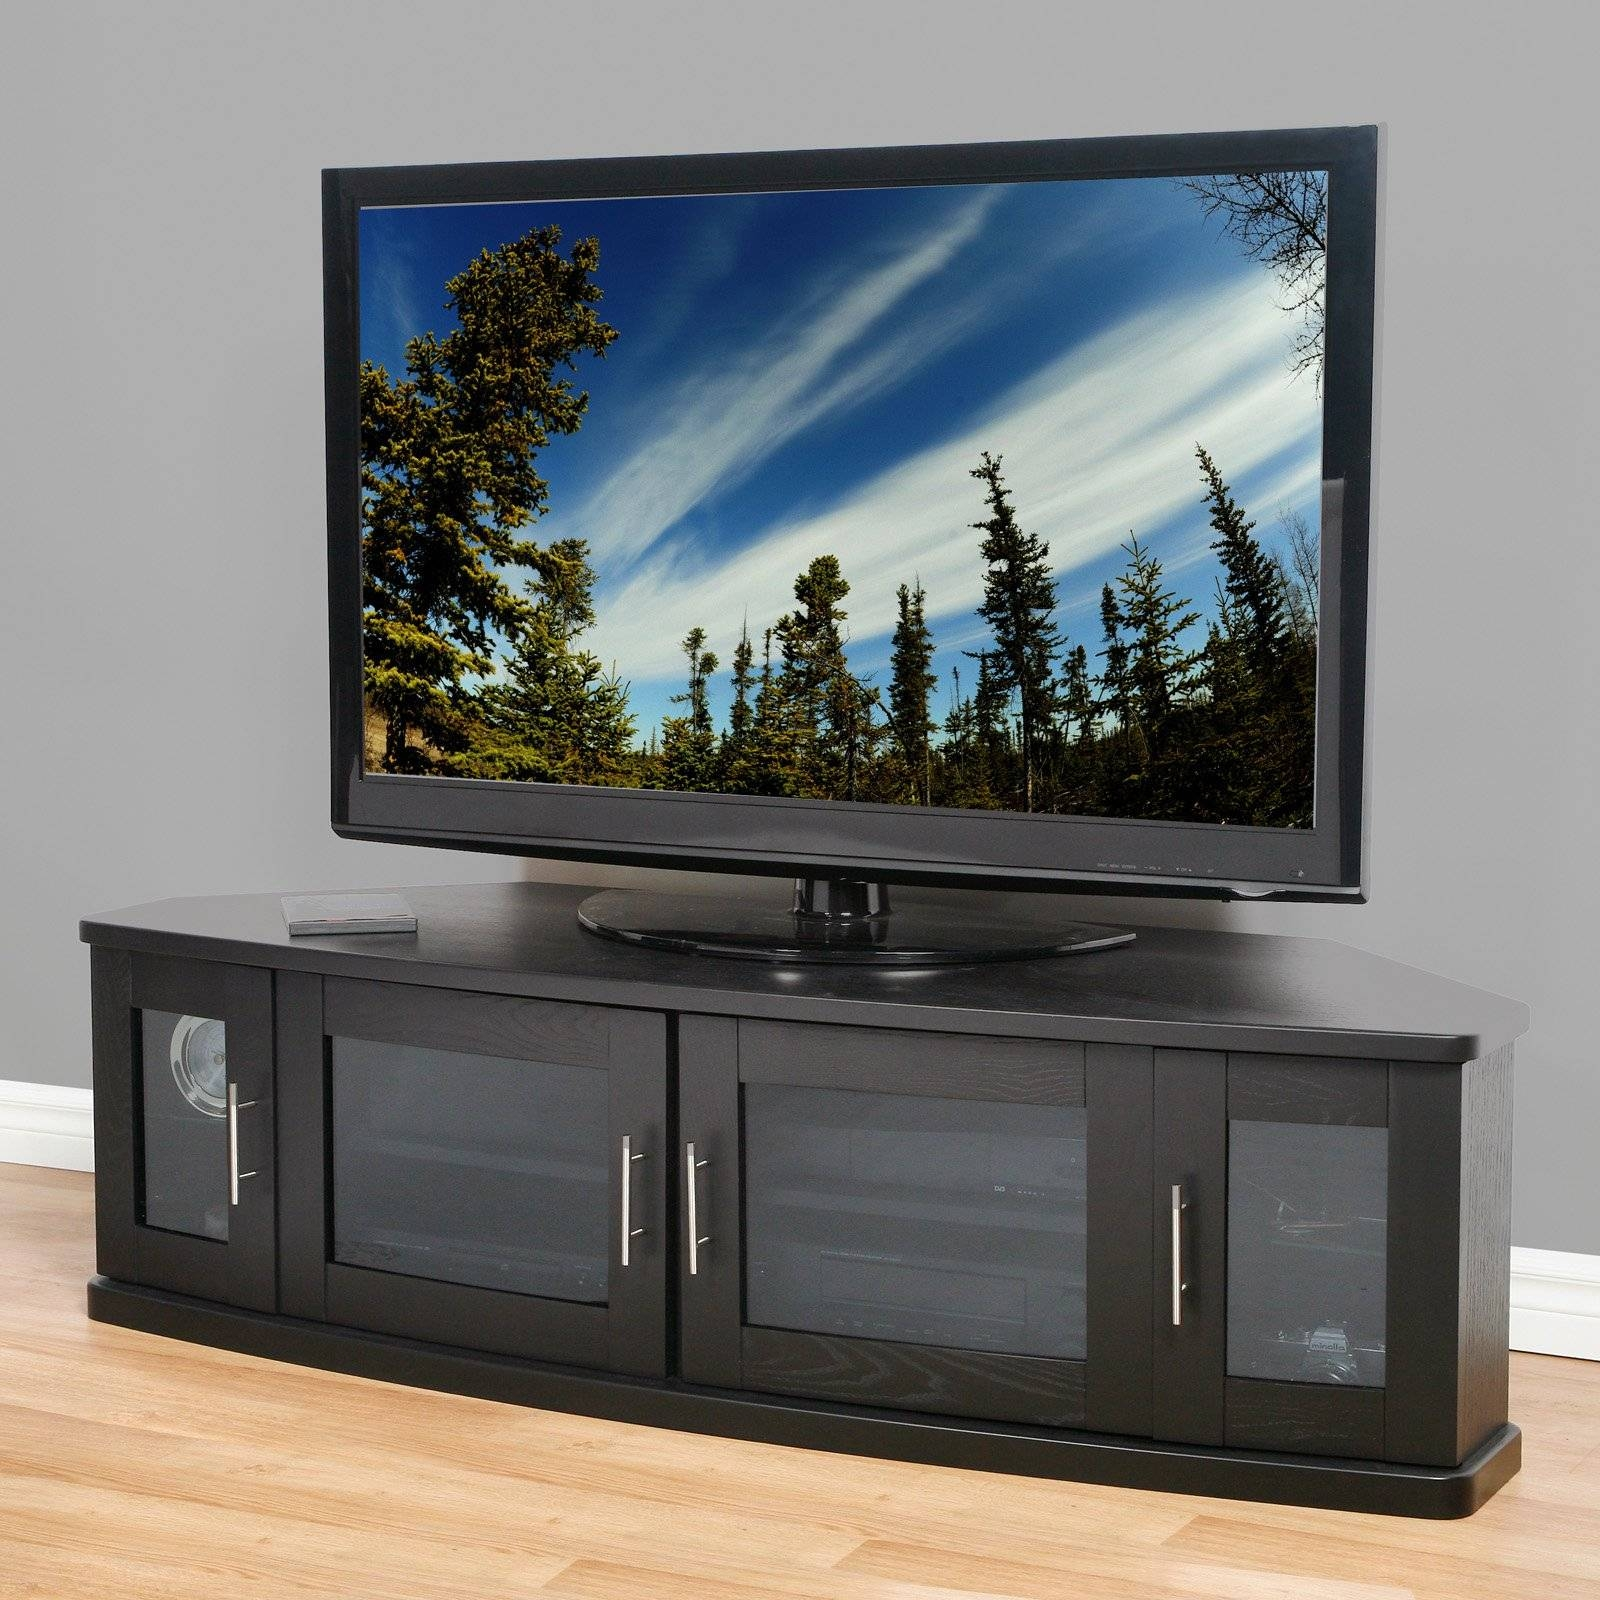 Modern Black Wooden Tv Stand With Frosted Glass Doors Of Dazzling for Corner Tv Unit With Glass Doors (Image 10 of 15)